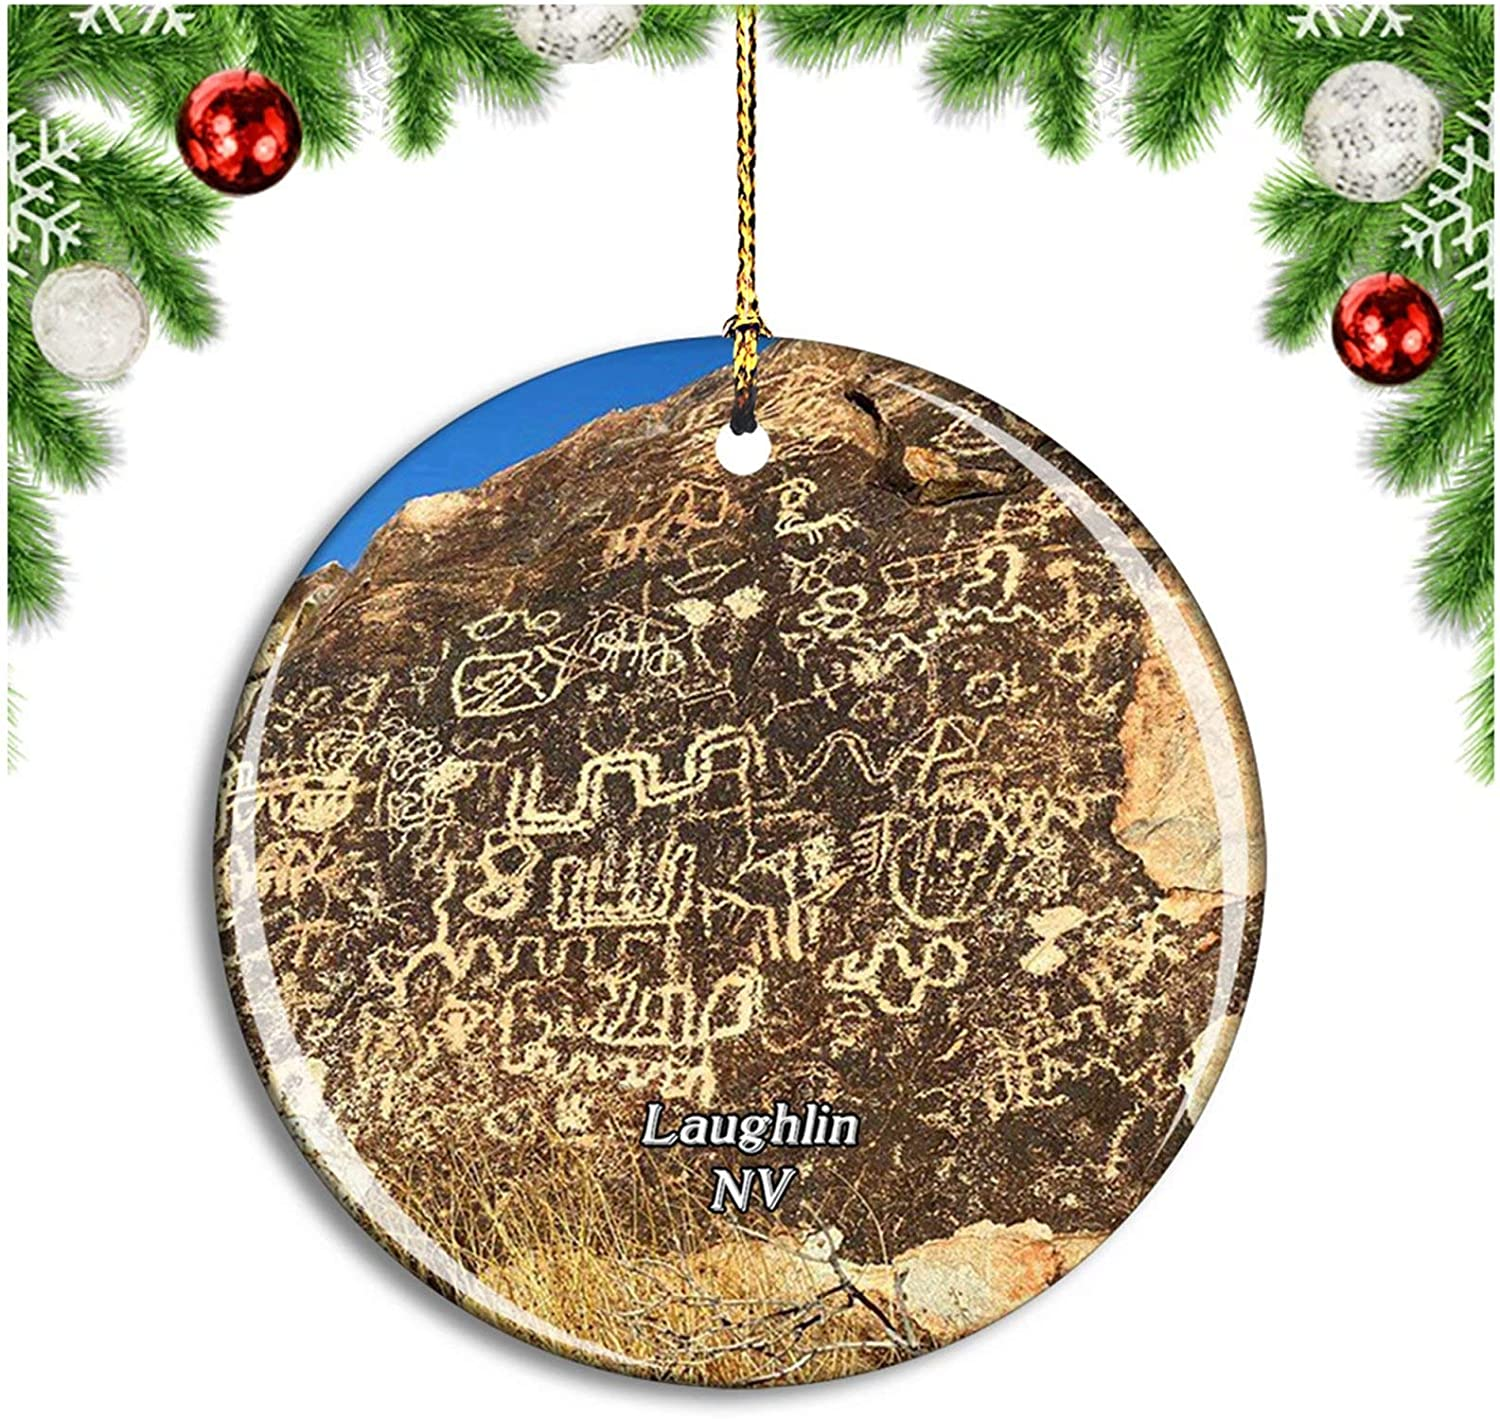 Christmas Eve Services Laughlin Nv 2021 Amazon Com Weekino Laughlin Grapevine Canyon Nevada Usa Christmas Ornament Xmas Tree Decoration Hanging Pendant Travel Souvenir Collection Double Sided Porcelain 2 85 Inch Home Kitchen